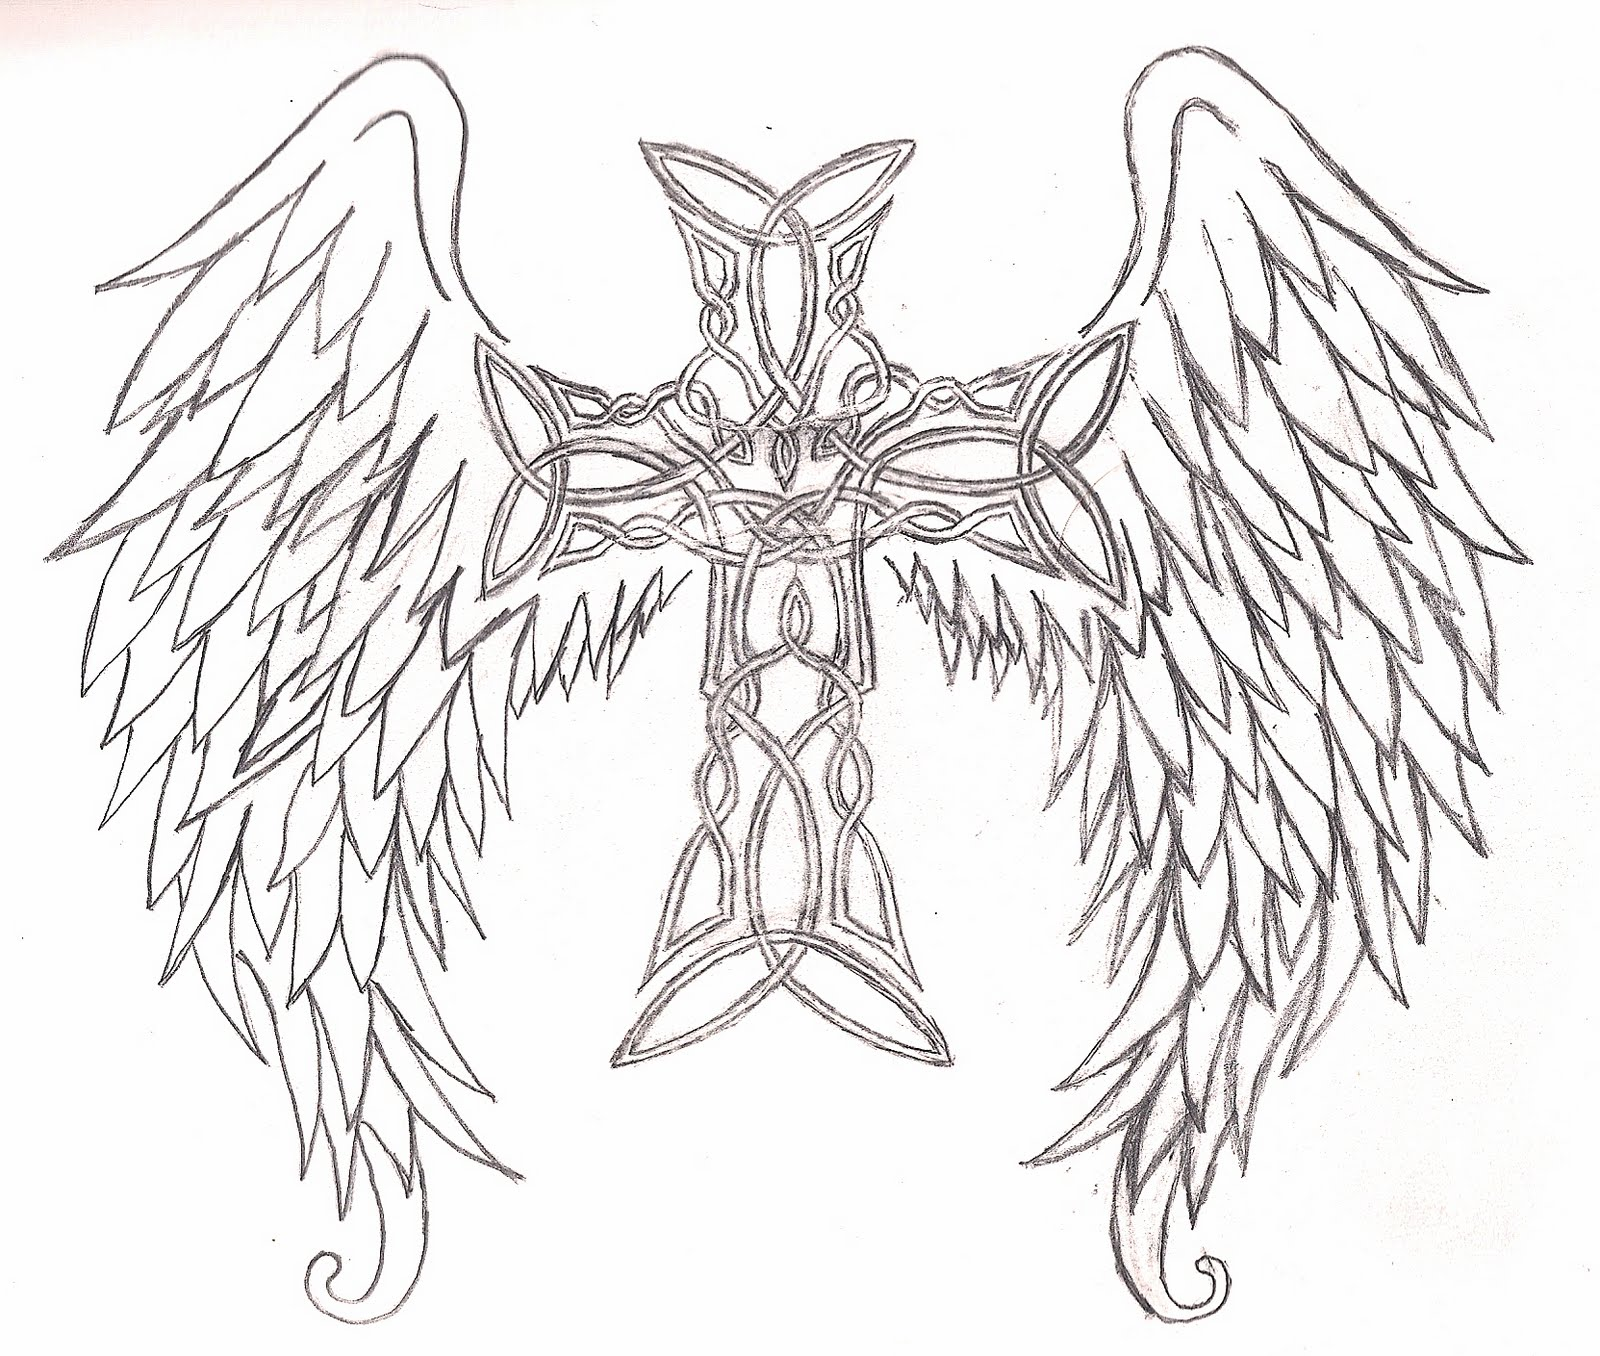 Cool Drawings of Crosses with Wings